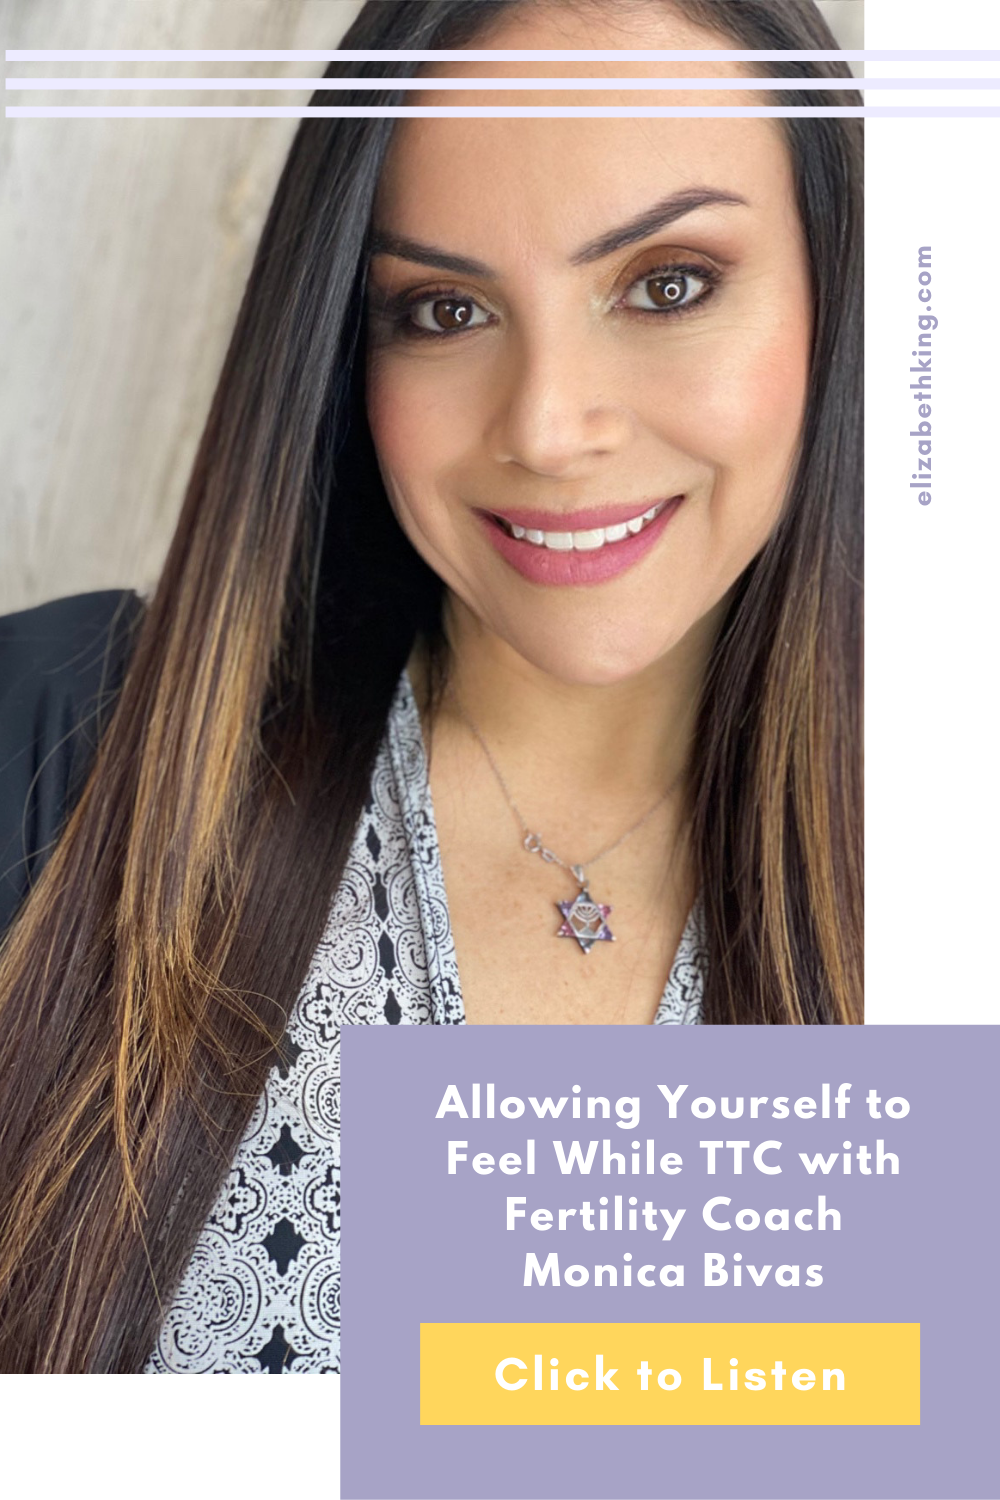 Allowing yourself to feel while TTC is not easy when you're going through the process. Click to learn from Fertility Coaches Elizabeth King and Monica Bivas on how you can properly grieve and feel your emotions from miscarriage and TTC so you can heal and move forward trying to conceive.